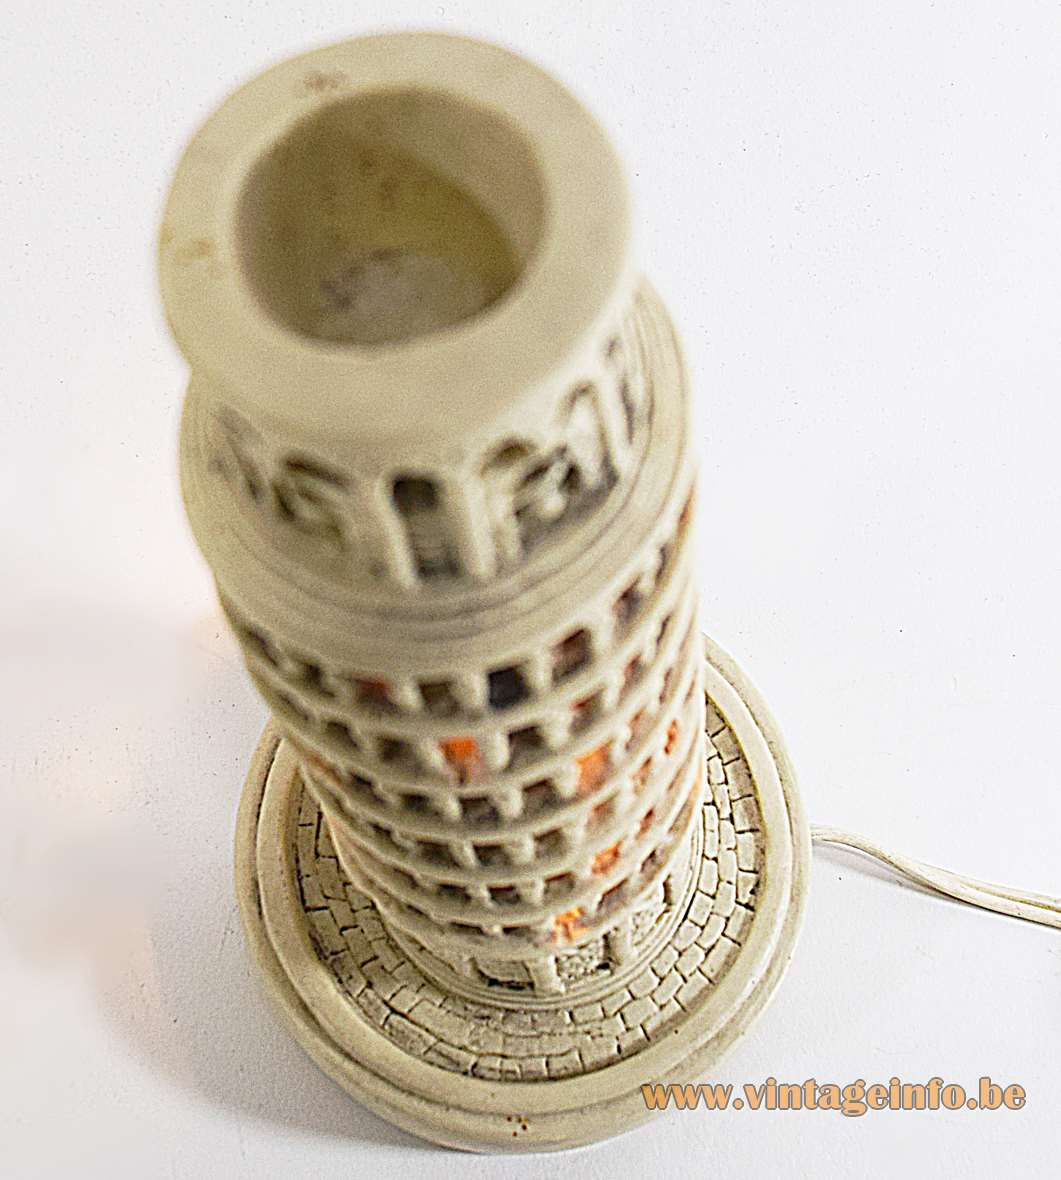 Leaning Tower of Pisa lamp in polystone resin souvenir Italy E14 lamp socket 1950s 1960s 1970s